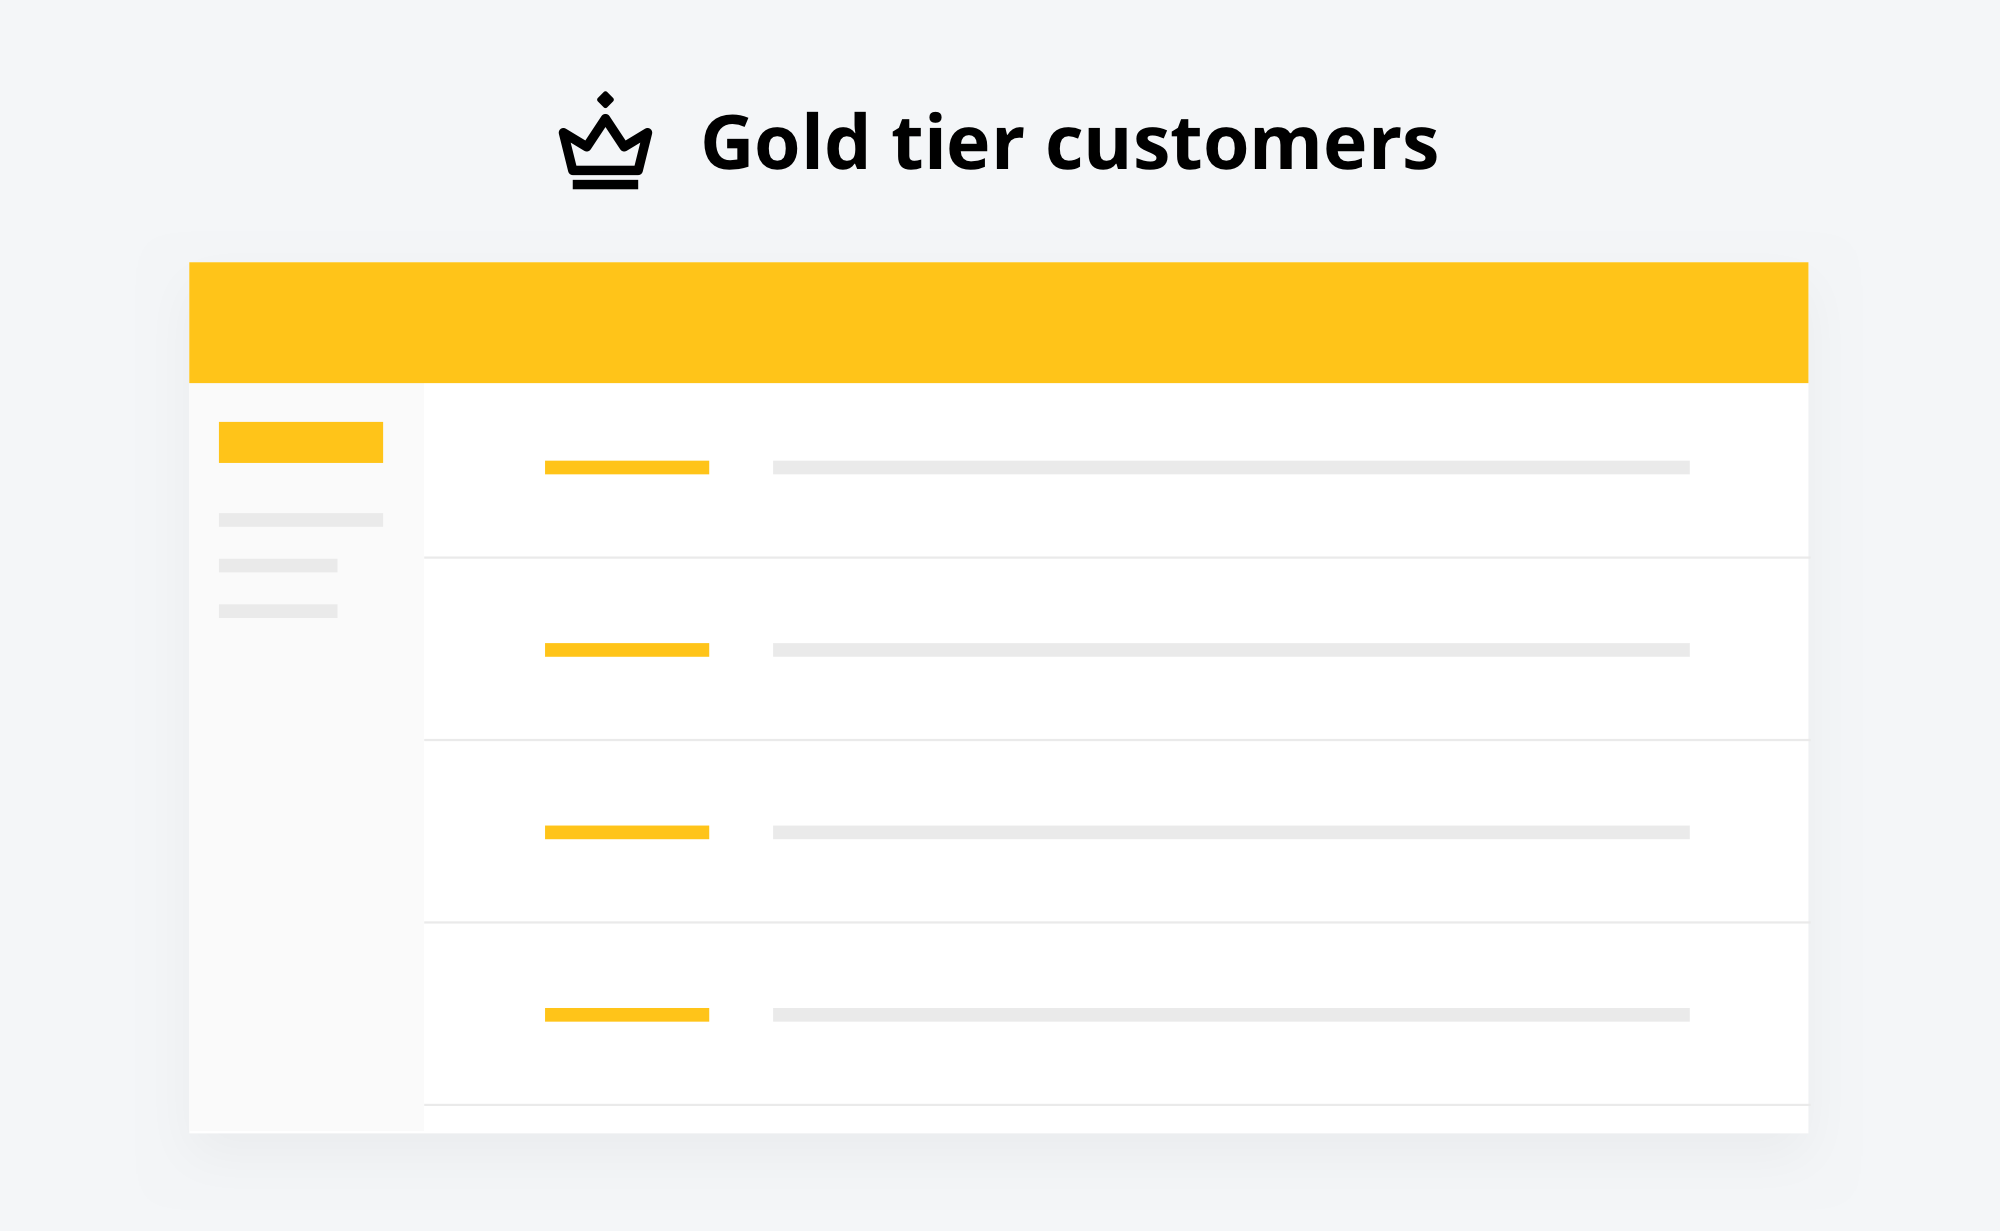 dotmailer and Smile allow you to segment customers by VIP tier